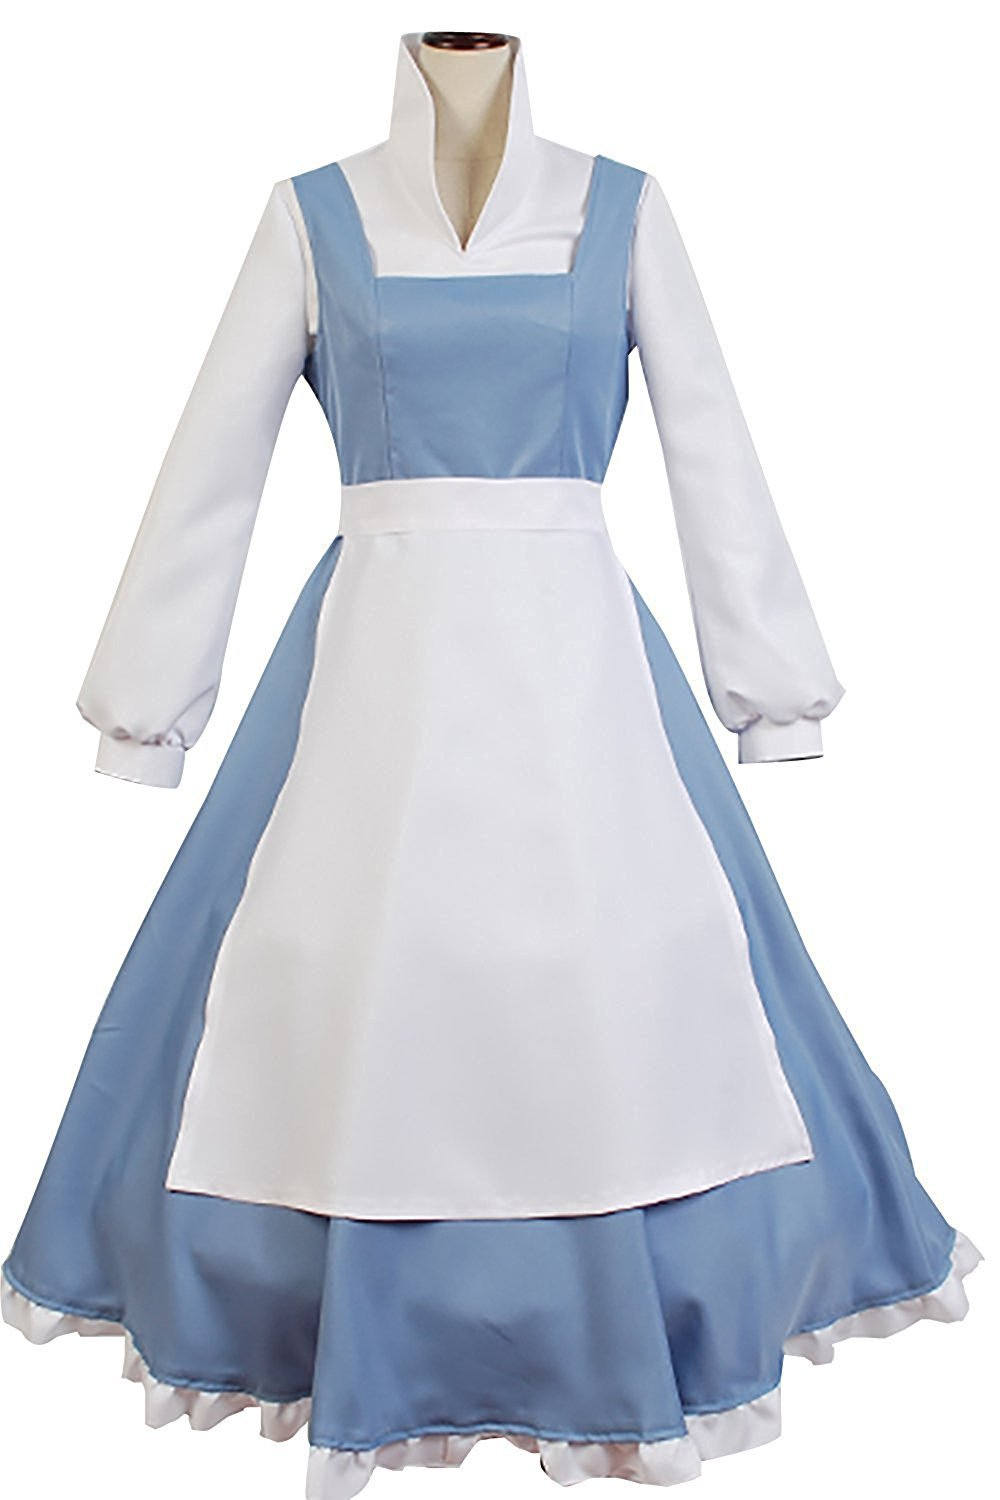 Sidnor Beauty and The Beast Cosplay Costume Princess Belle Outfit Maid Dress Suit Ball Gowns (Large) by Sidnor